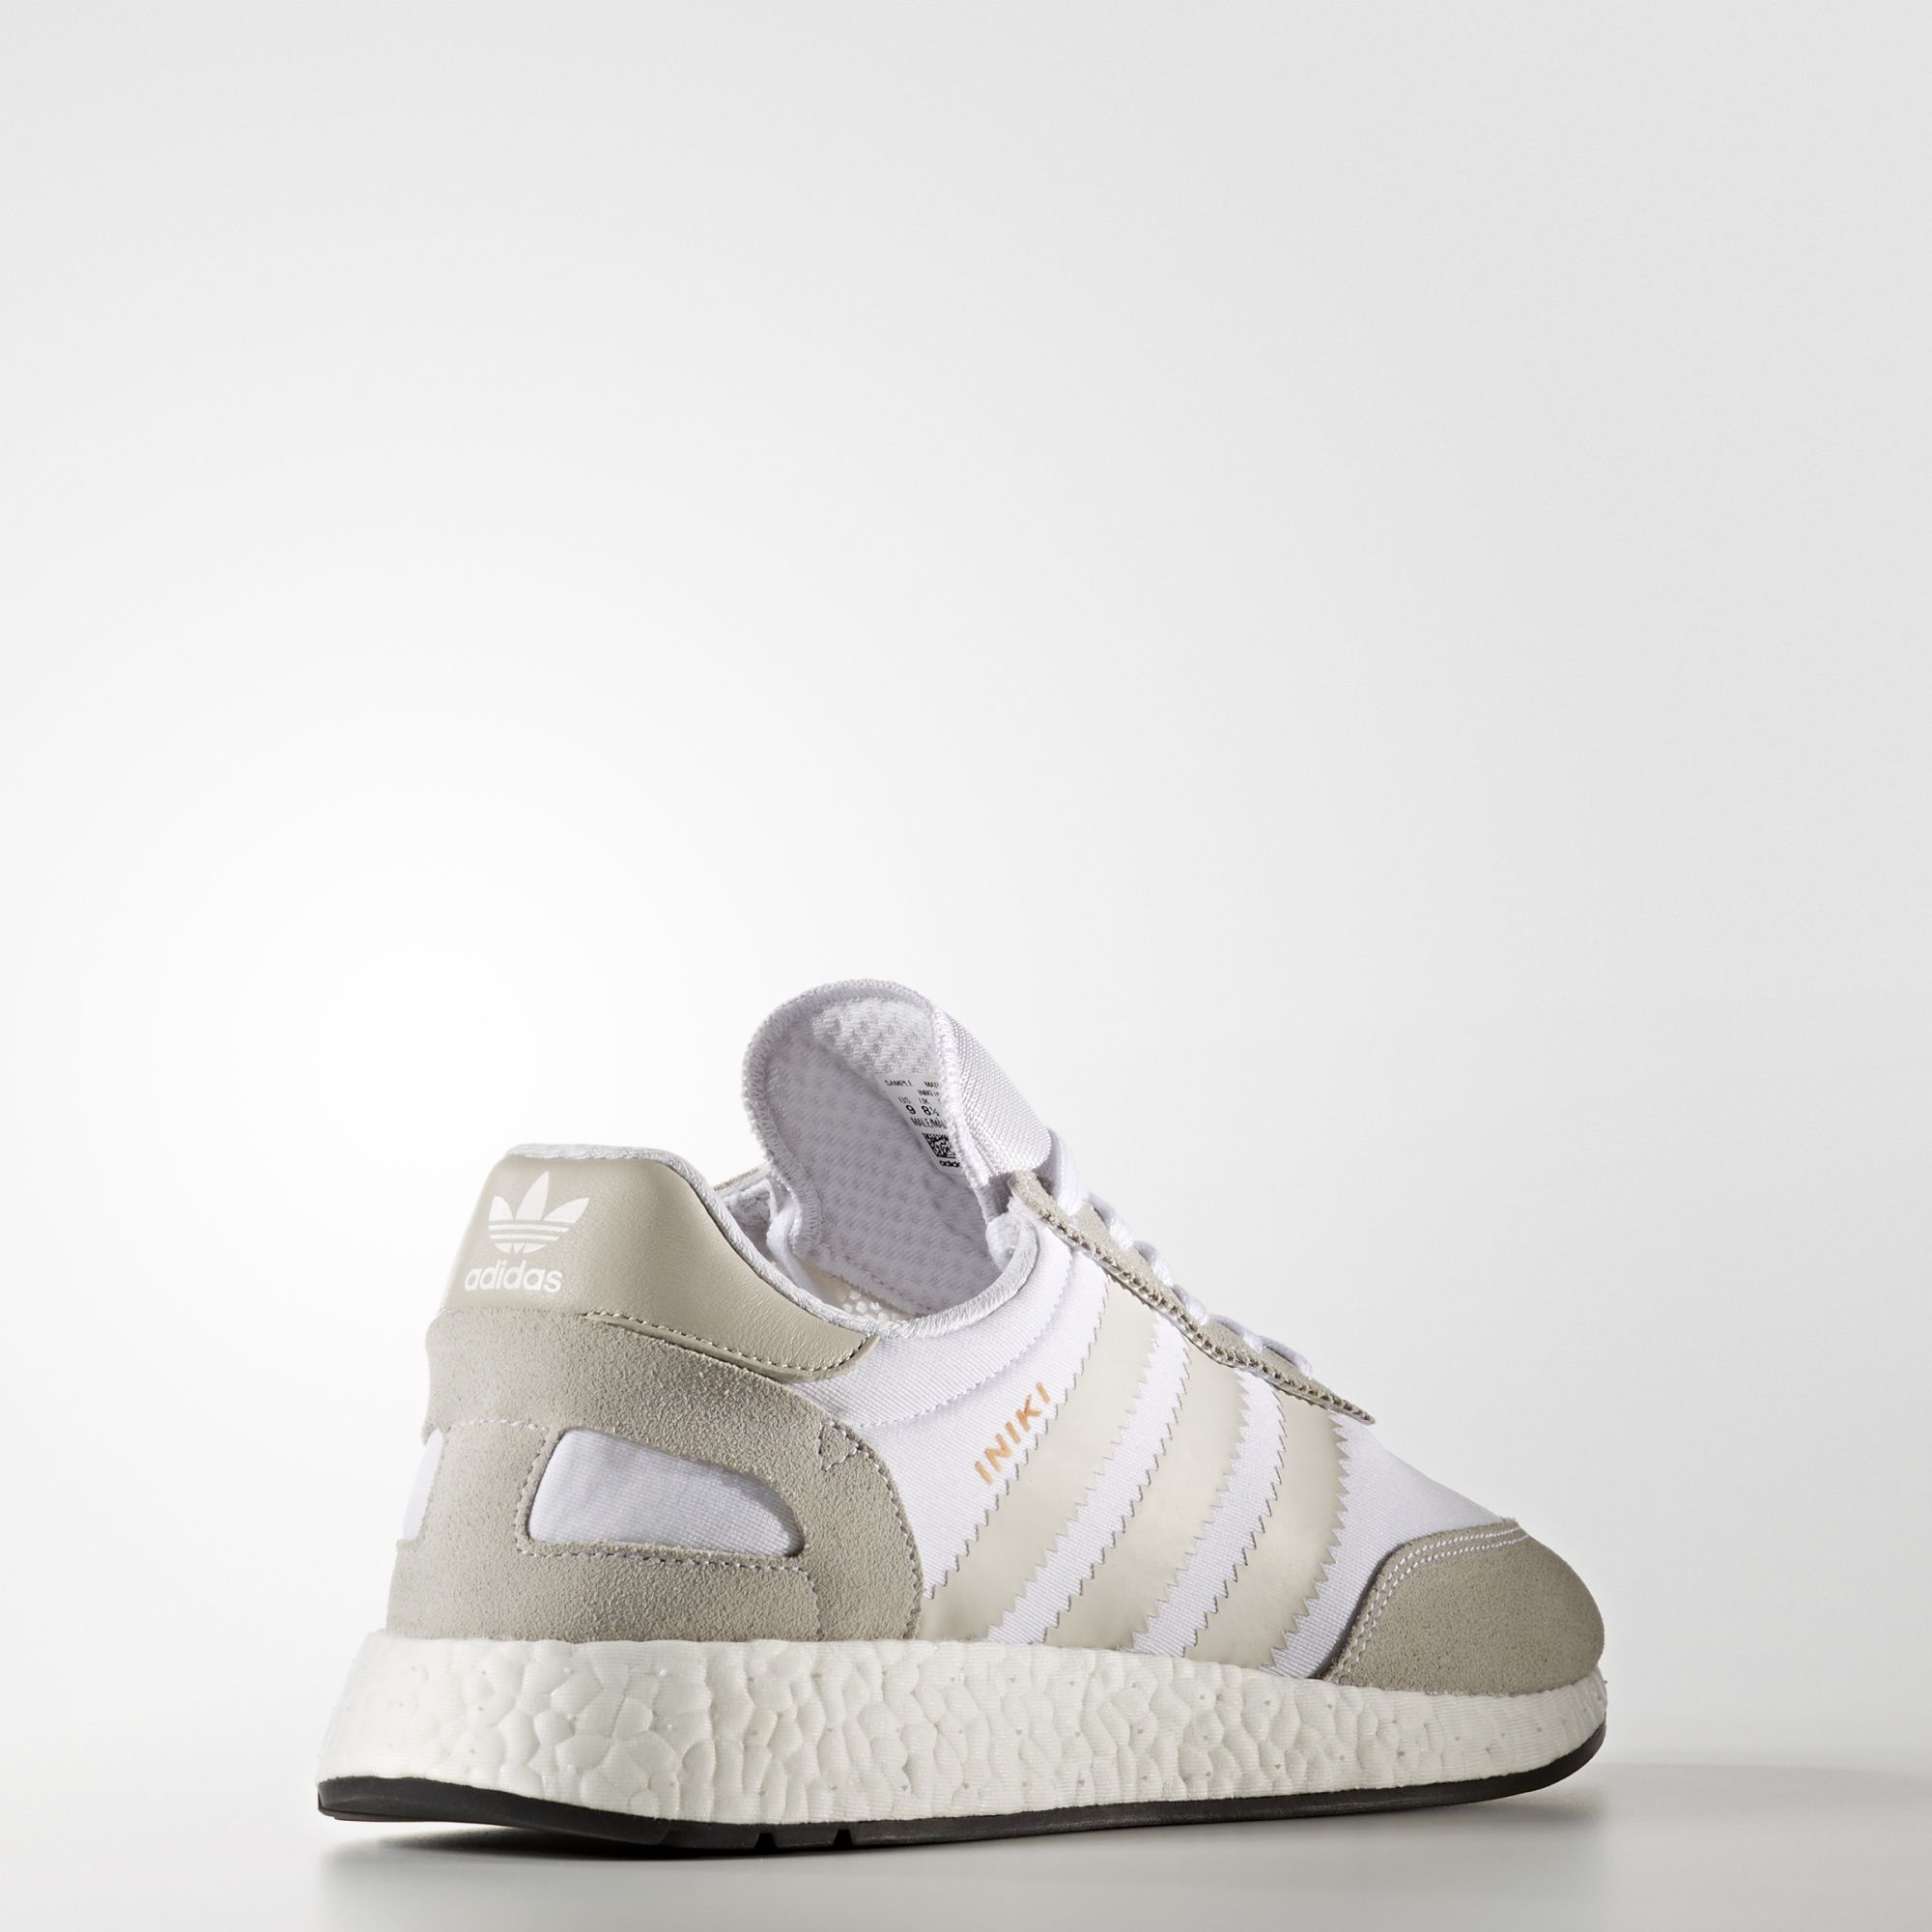 adidas Iniki Runner Pearl Grey BB2101 4